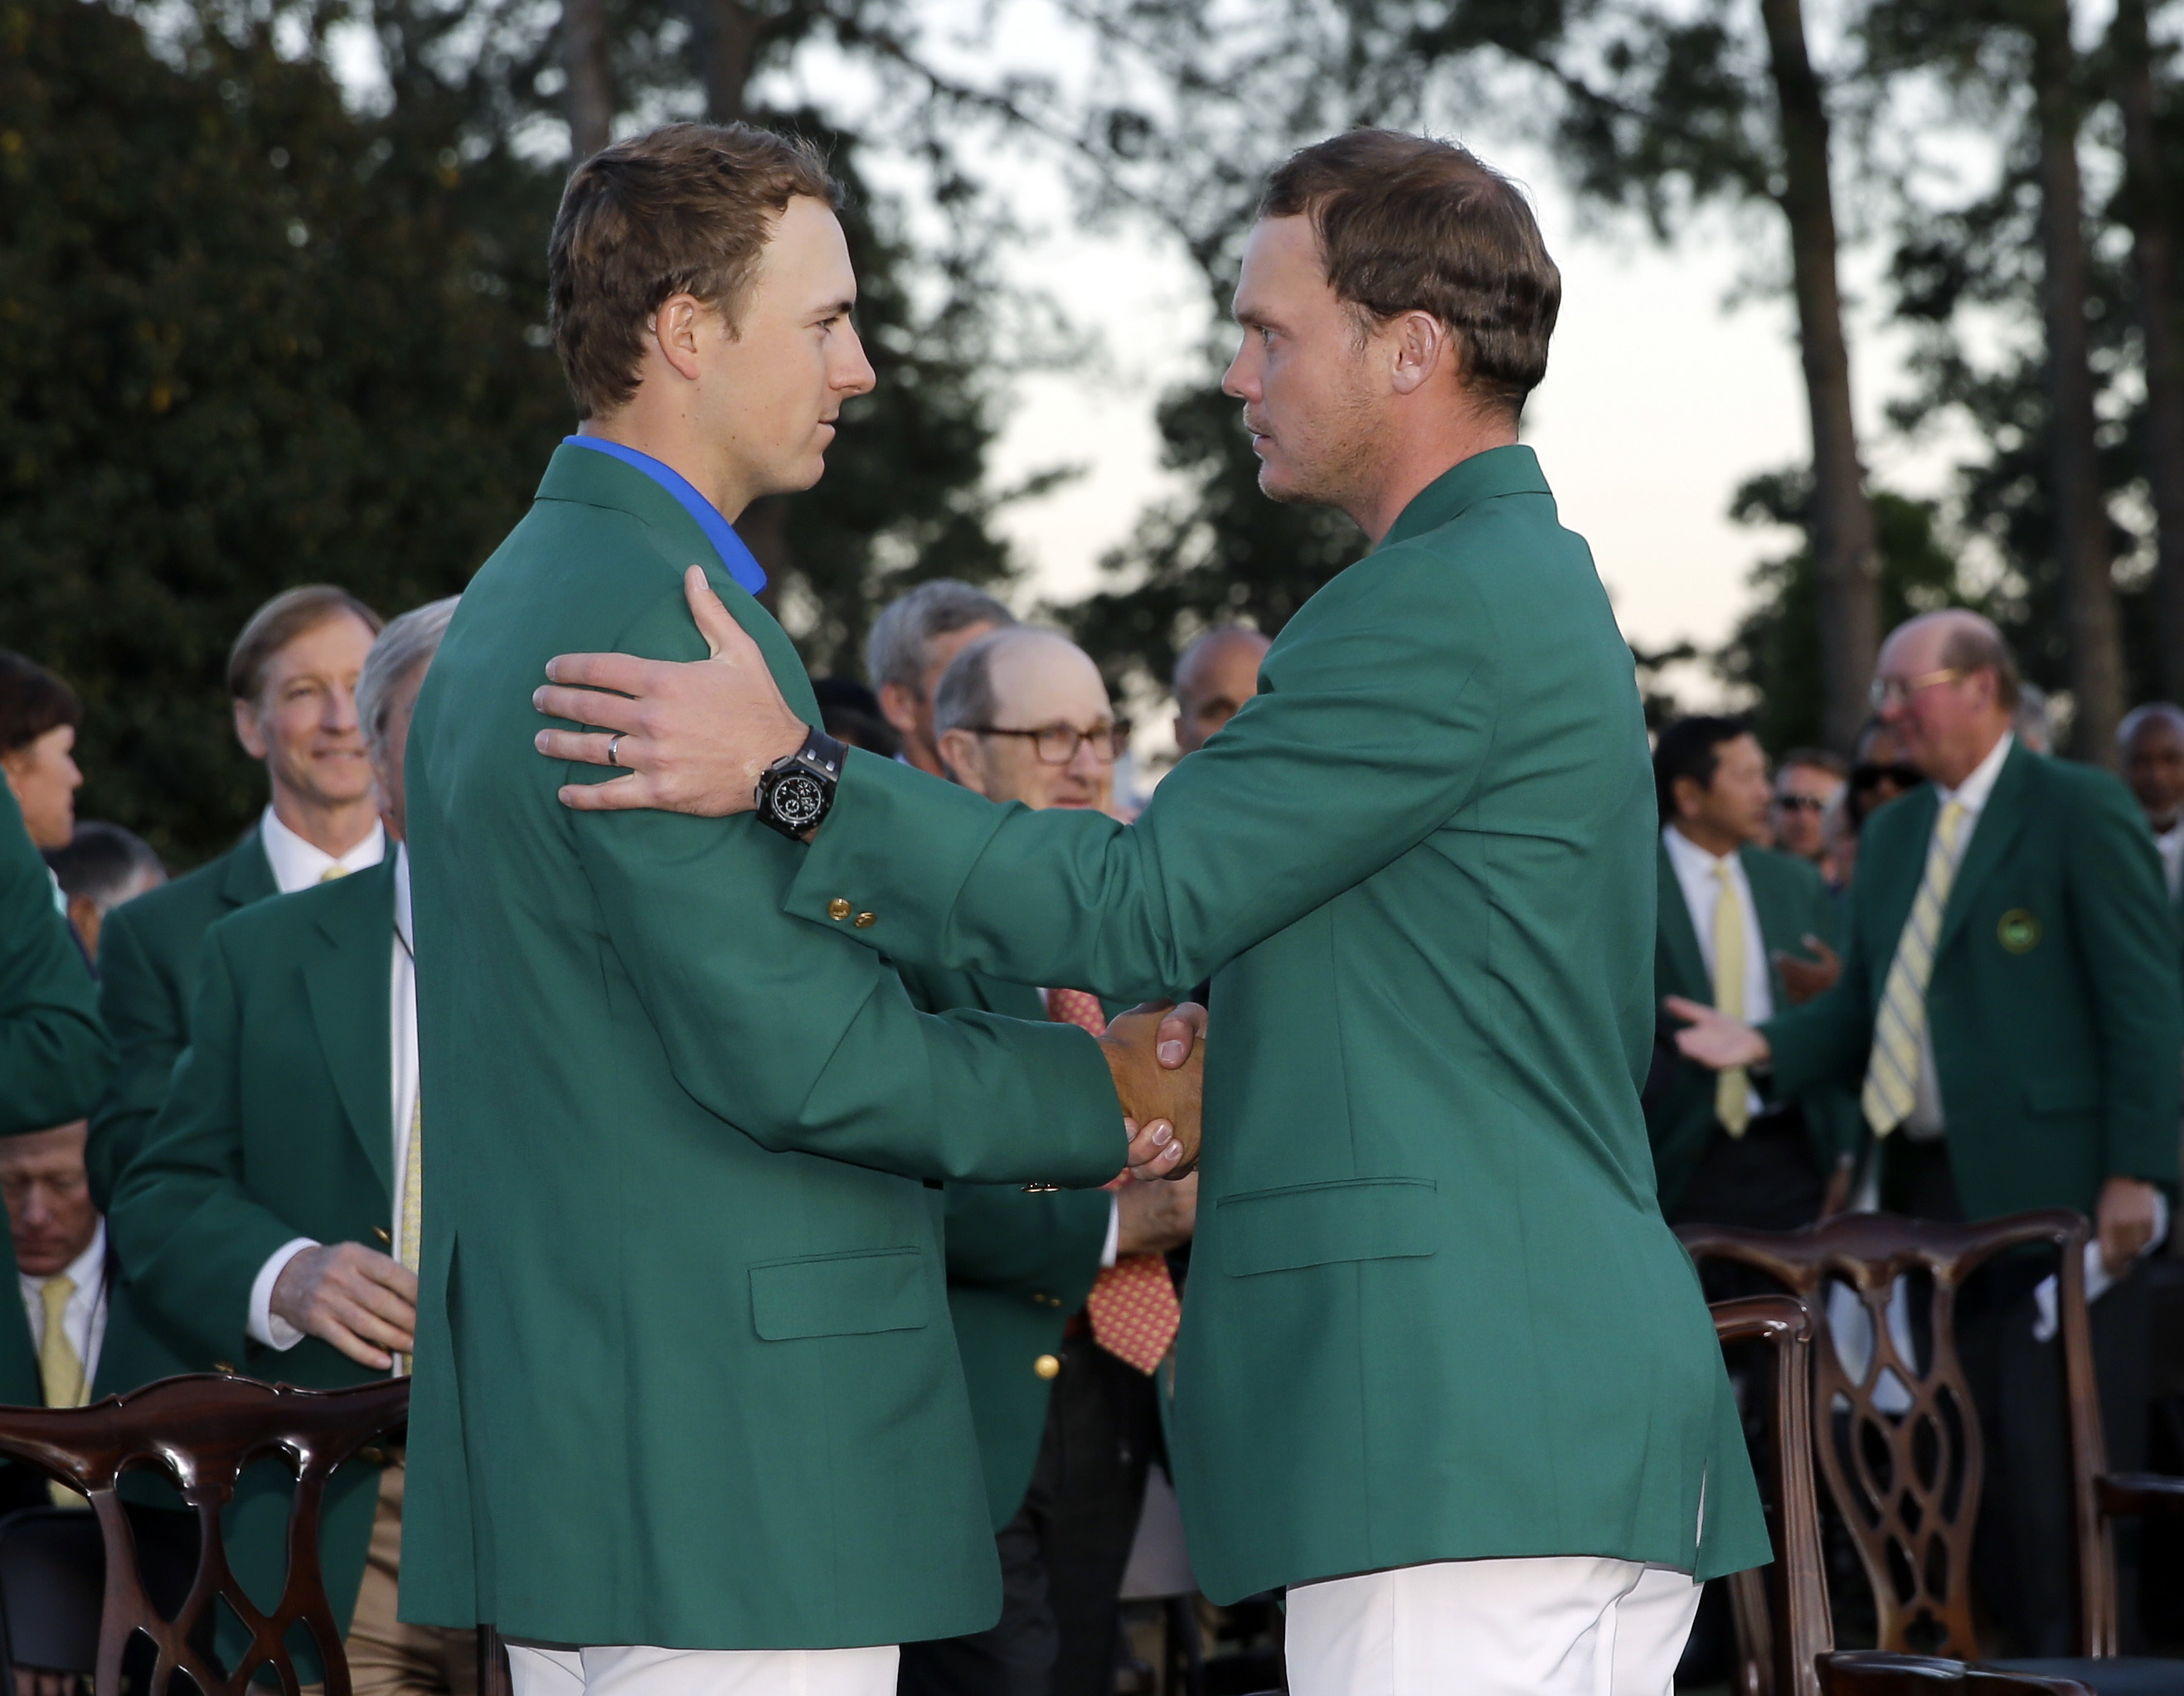 FILE- In this April 10, 2016 file photo, defending champion Jordan Spieth, left, shakes hands with Masters champion Danny Willett, of England, following the final round of the Masters golf tournament in Augusta, Ga. After making a run at the Grand Slam in